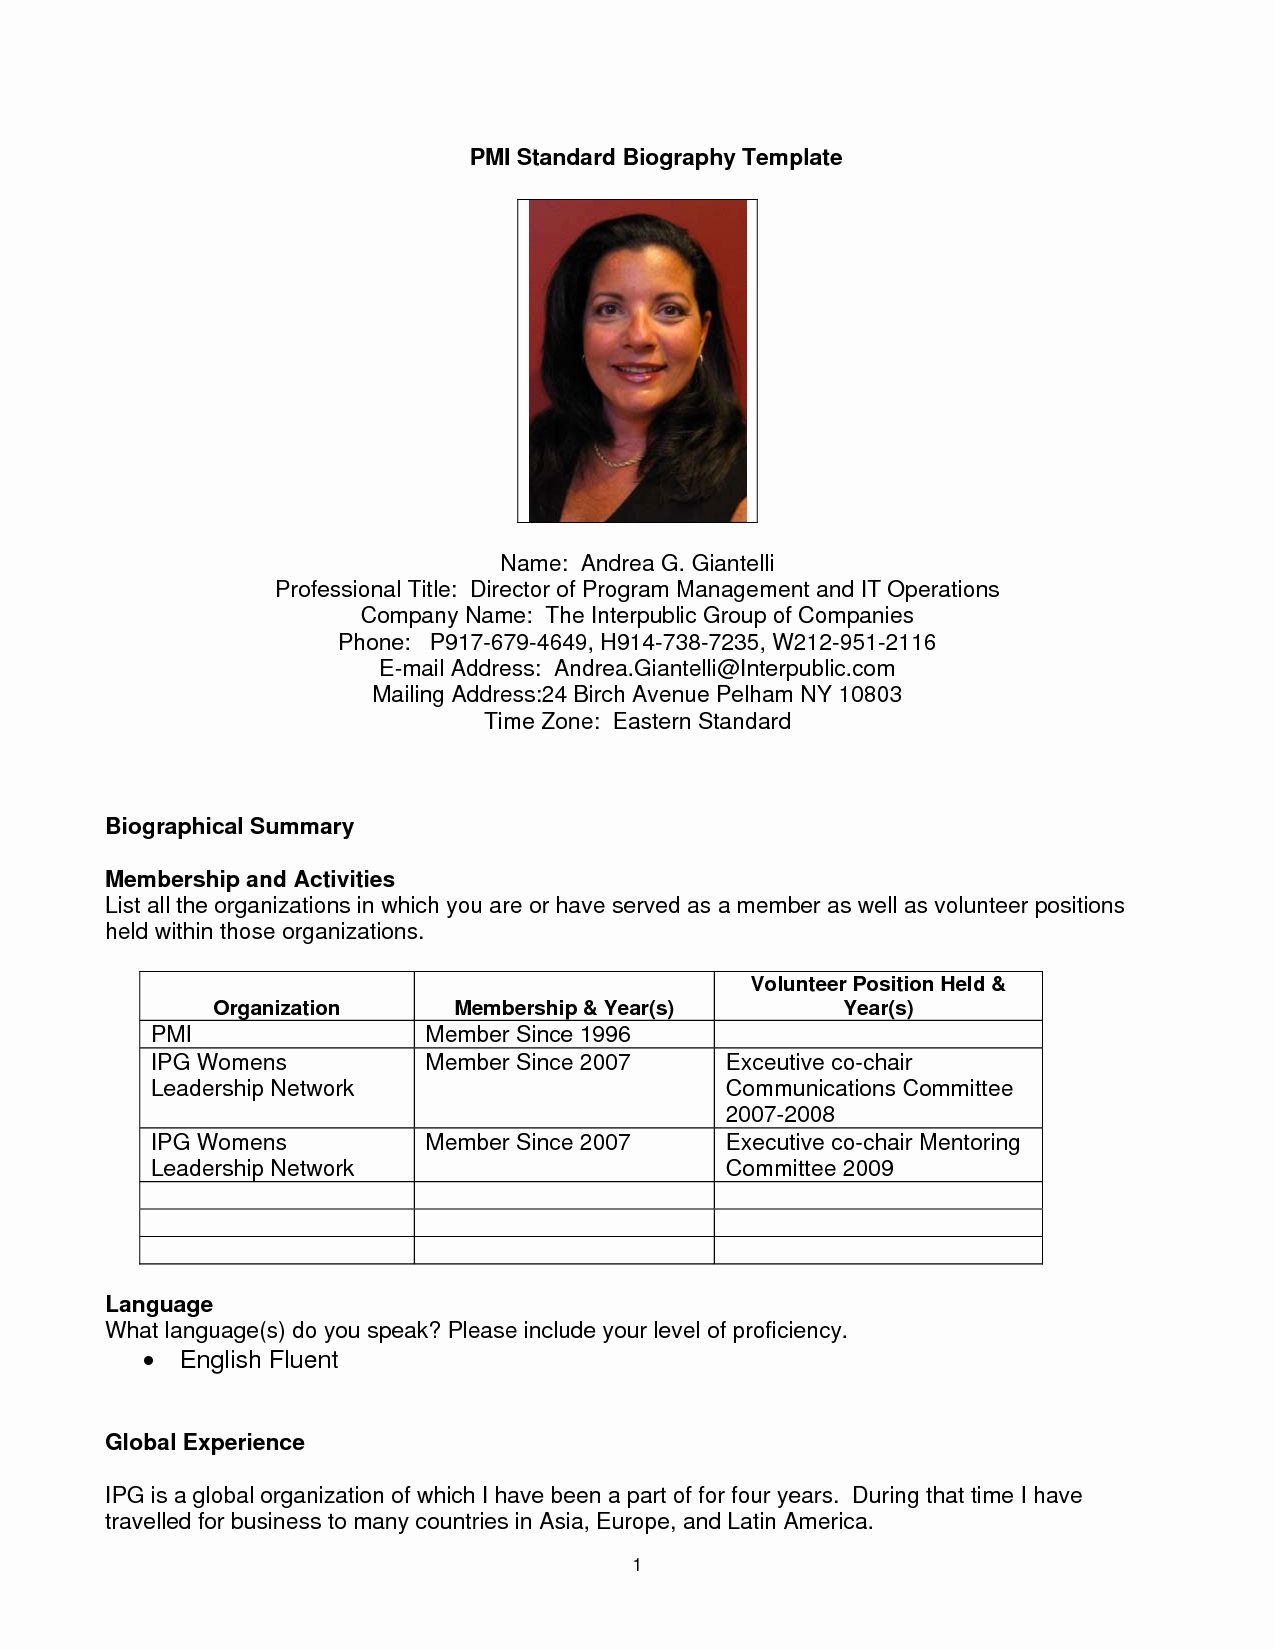 Biography Template For Students New Student Biography Example Bio Examples Biography Template Biography Sample Personal Biography